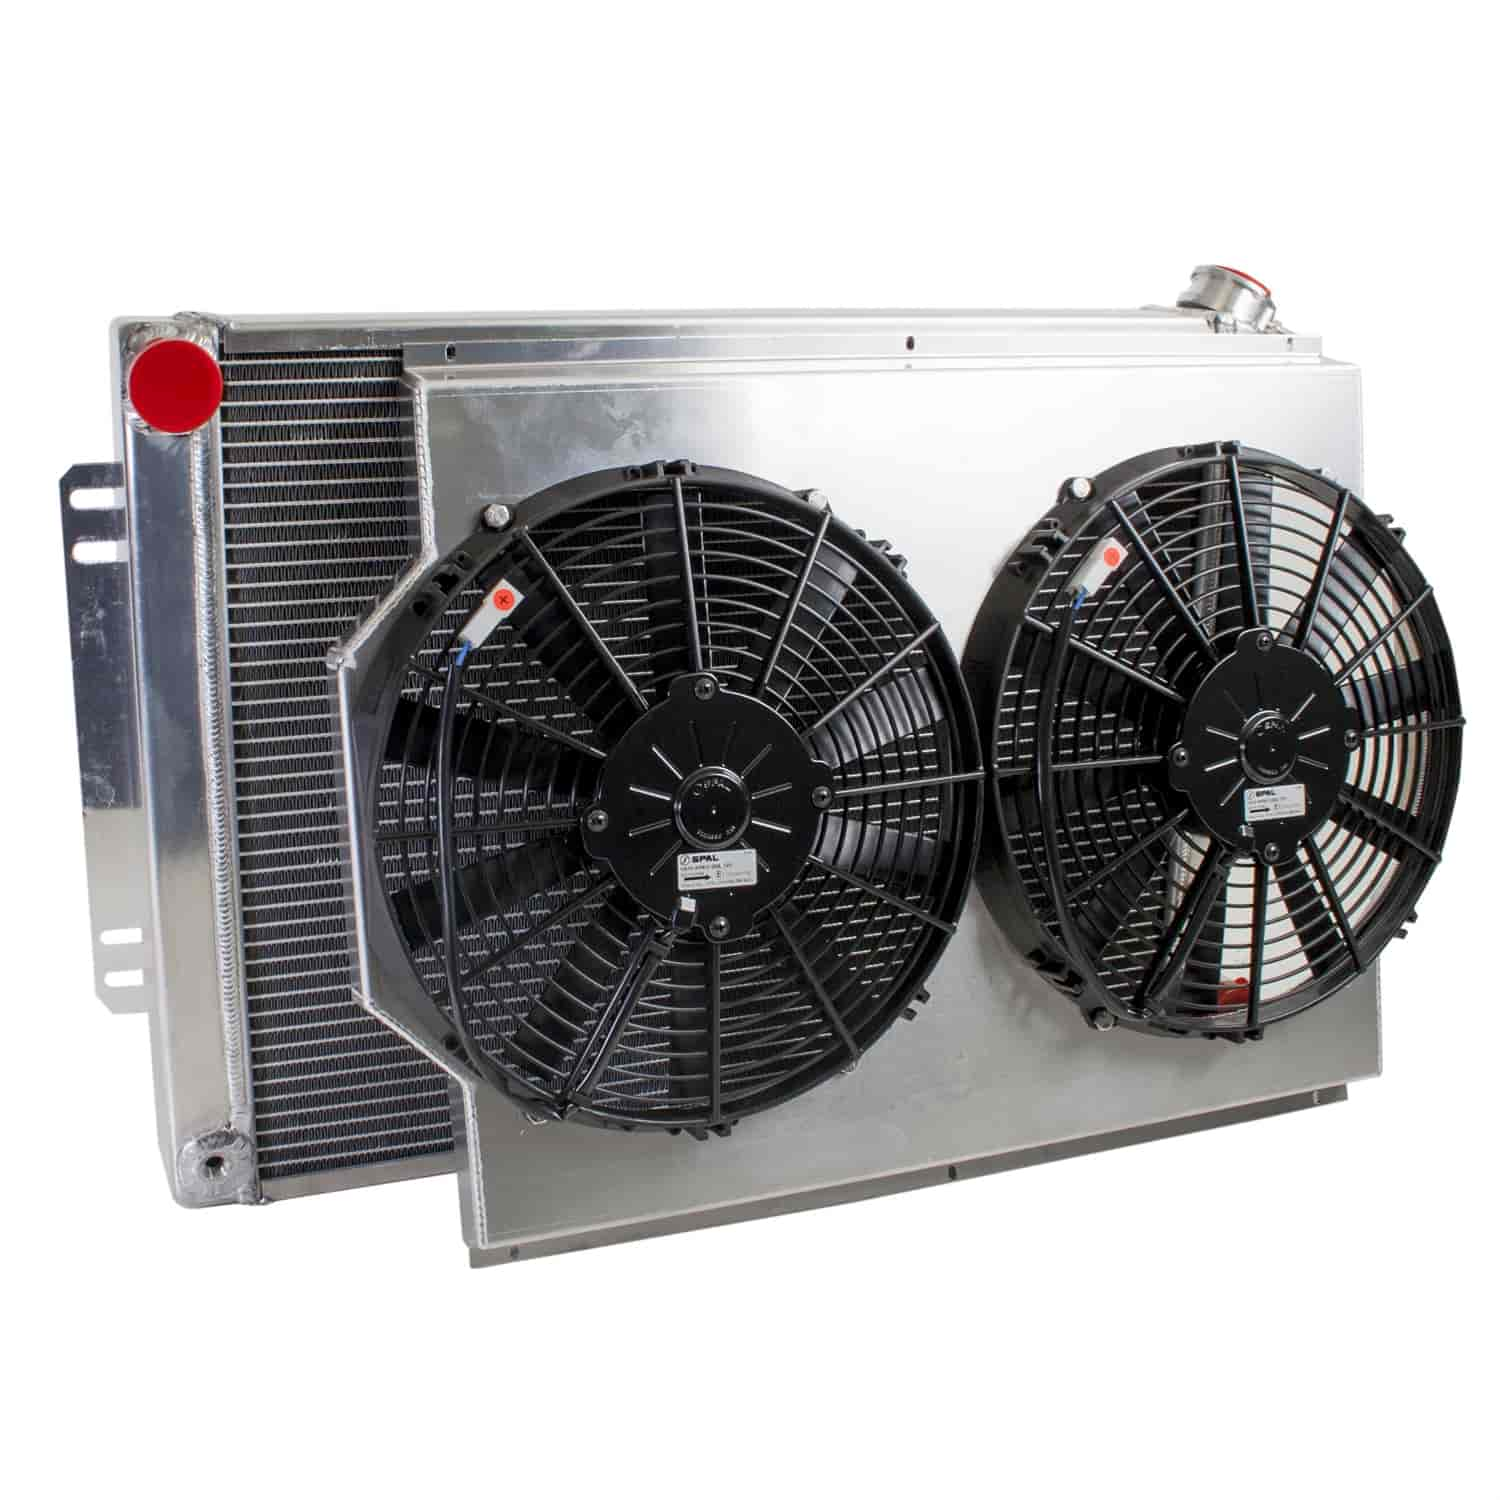 Griffin Radiators CU-70009